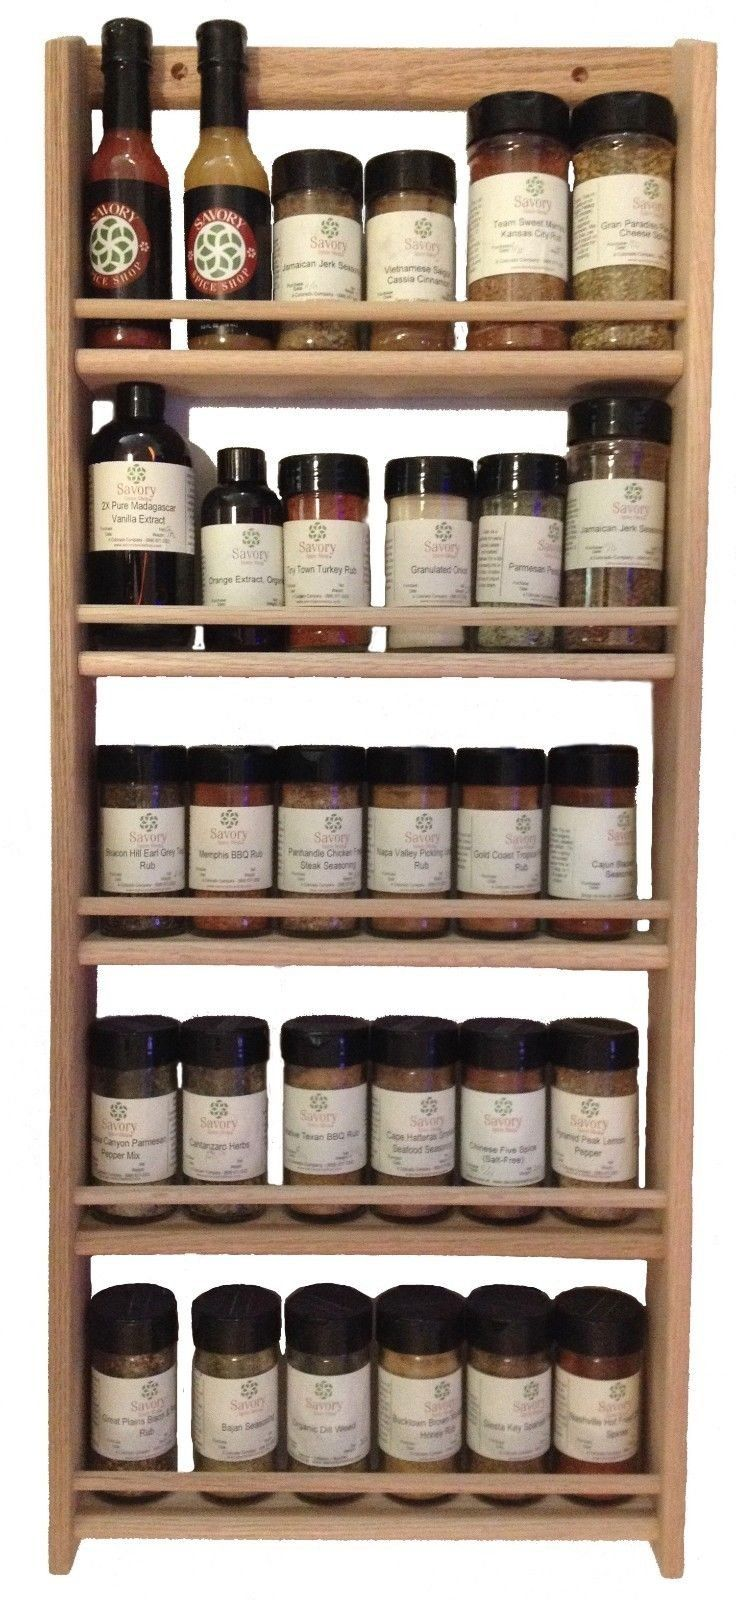 "Wooden Spice Rack Wall Mount Pleasing Solid Oak Wood Spice Rack  3275""h X 1375 ""w  Wall Mount Wooden"